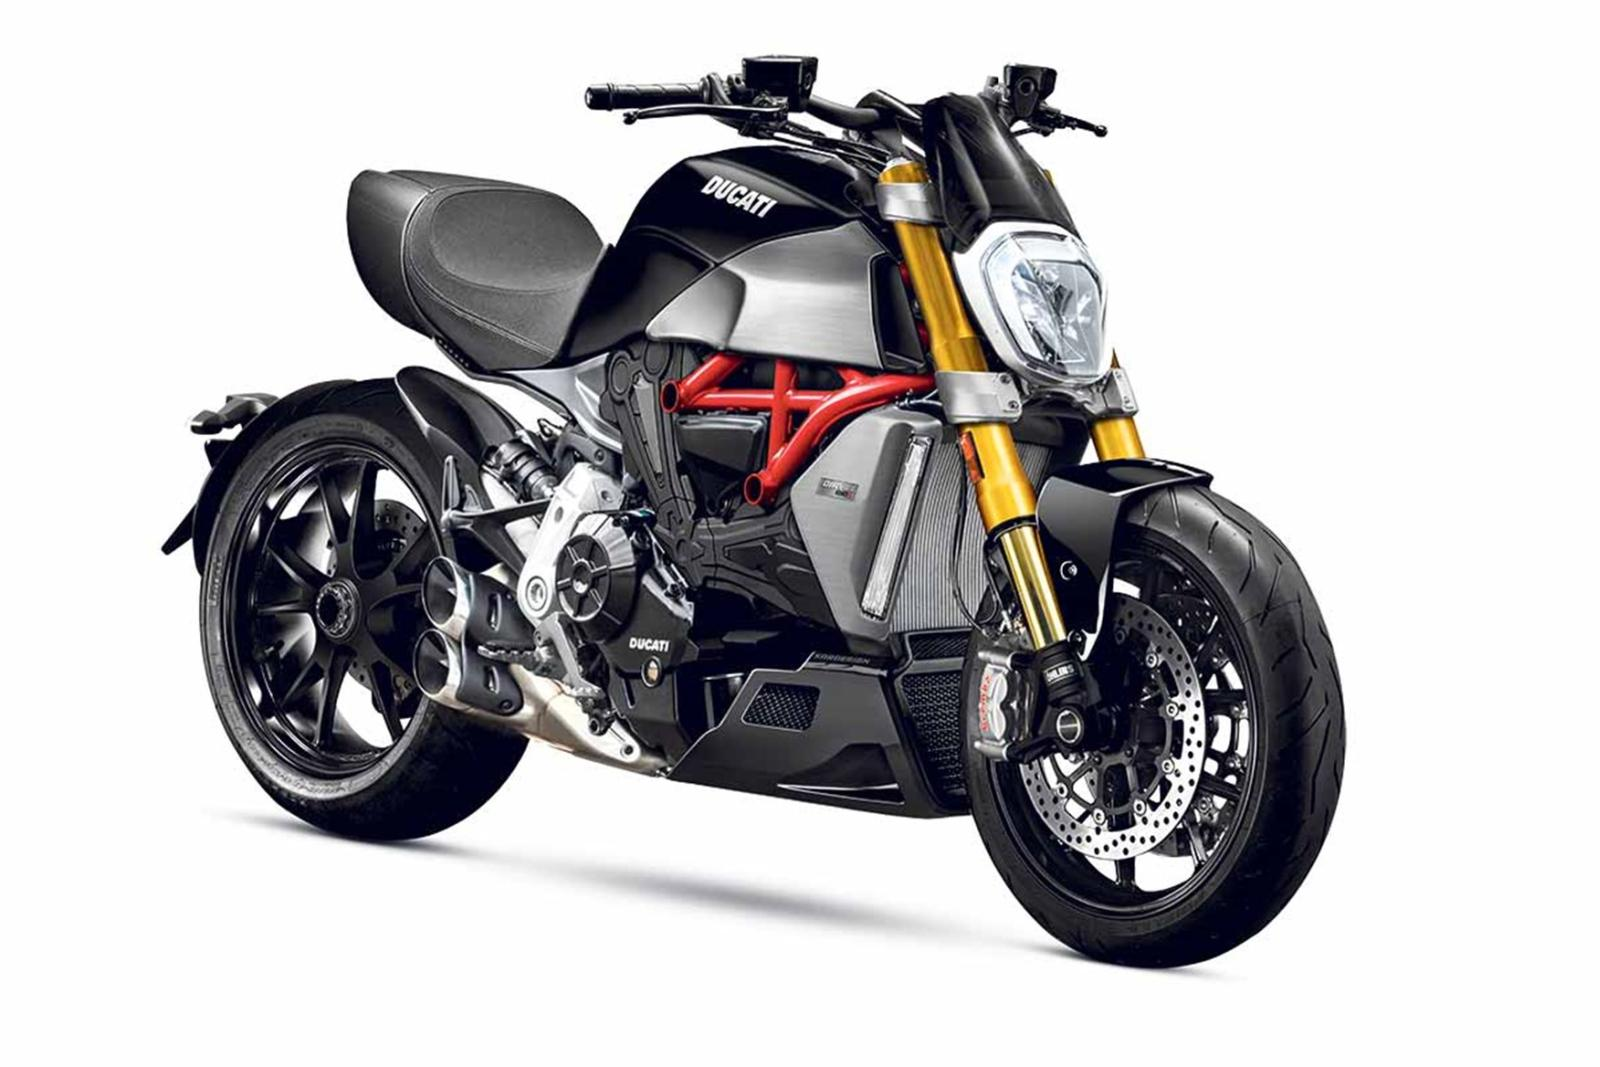 Ducati Diavel Latest Auto News And Reviews Motoroids